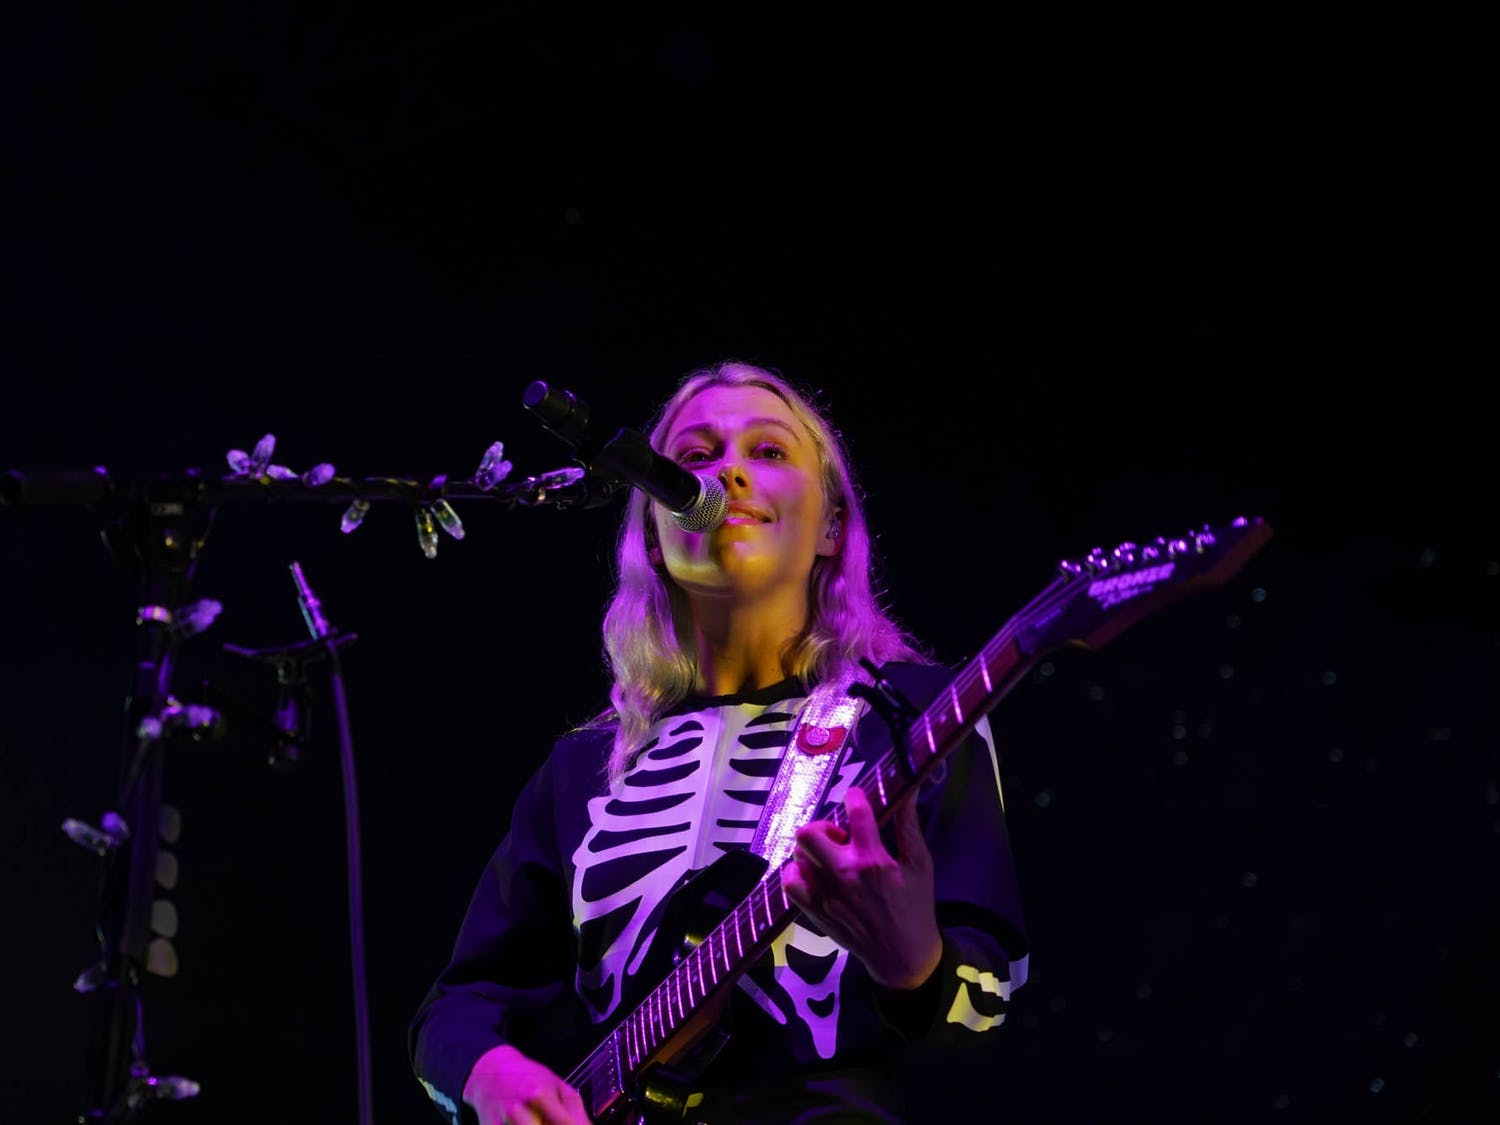 Phoebe Bridgers performs a show at the Red Hat Ampitheater in Raleigh, NC, on Sept. 21, 2021.